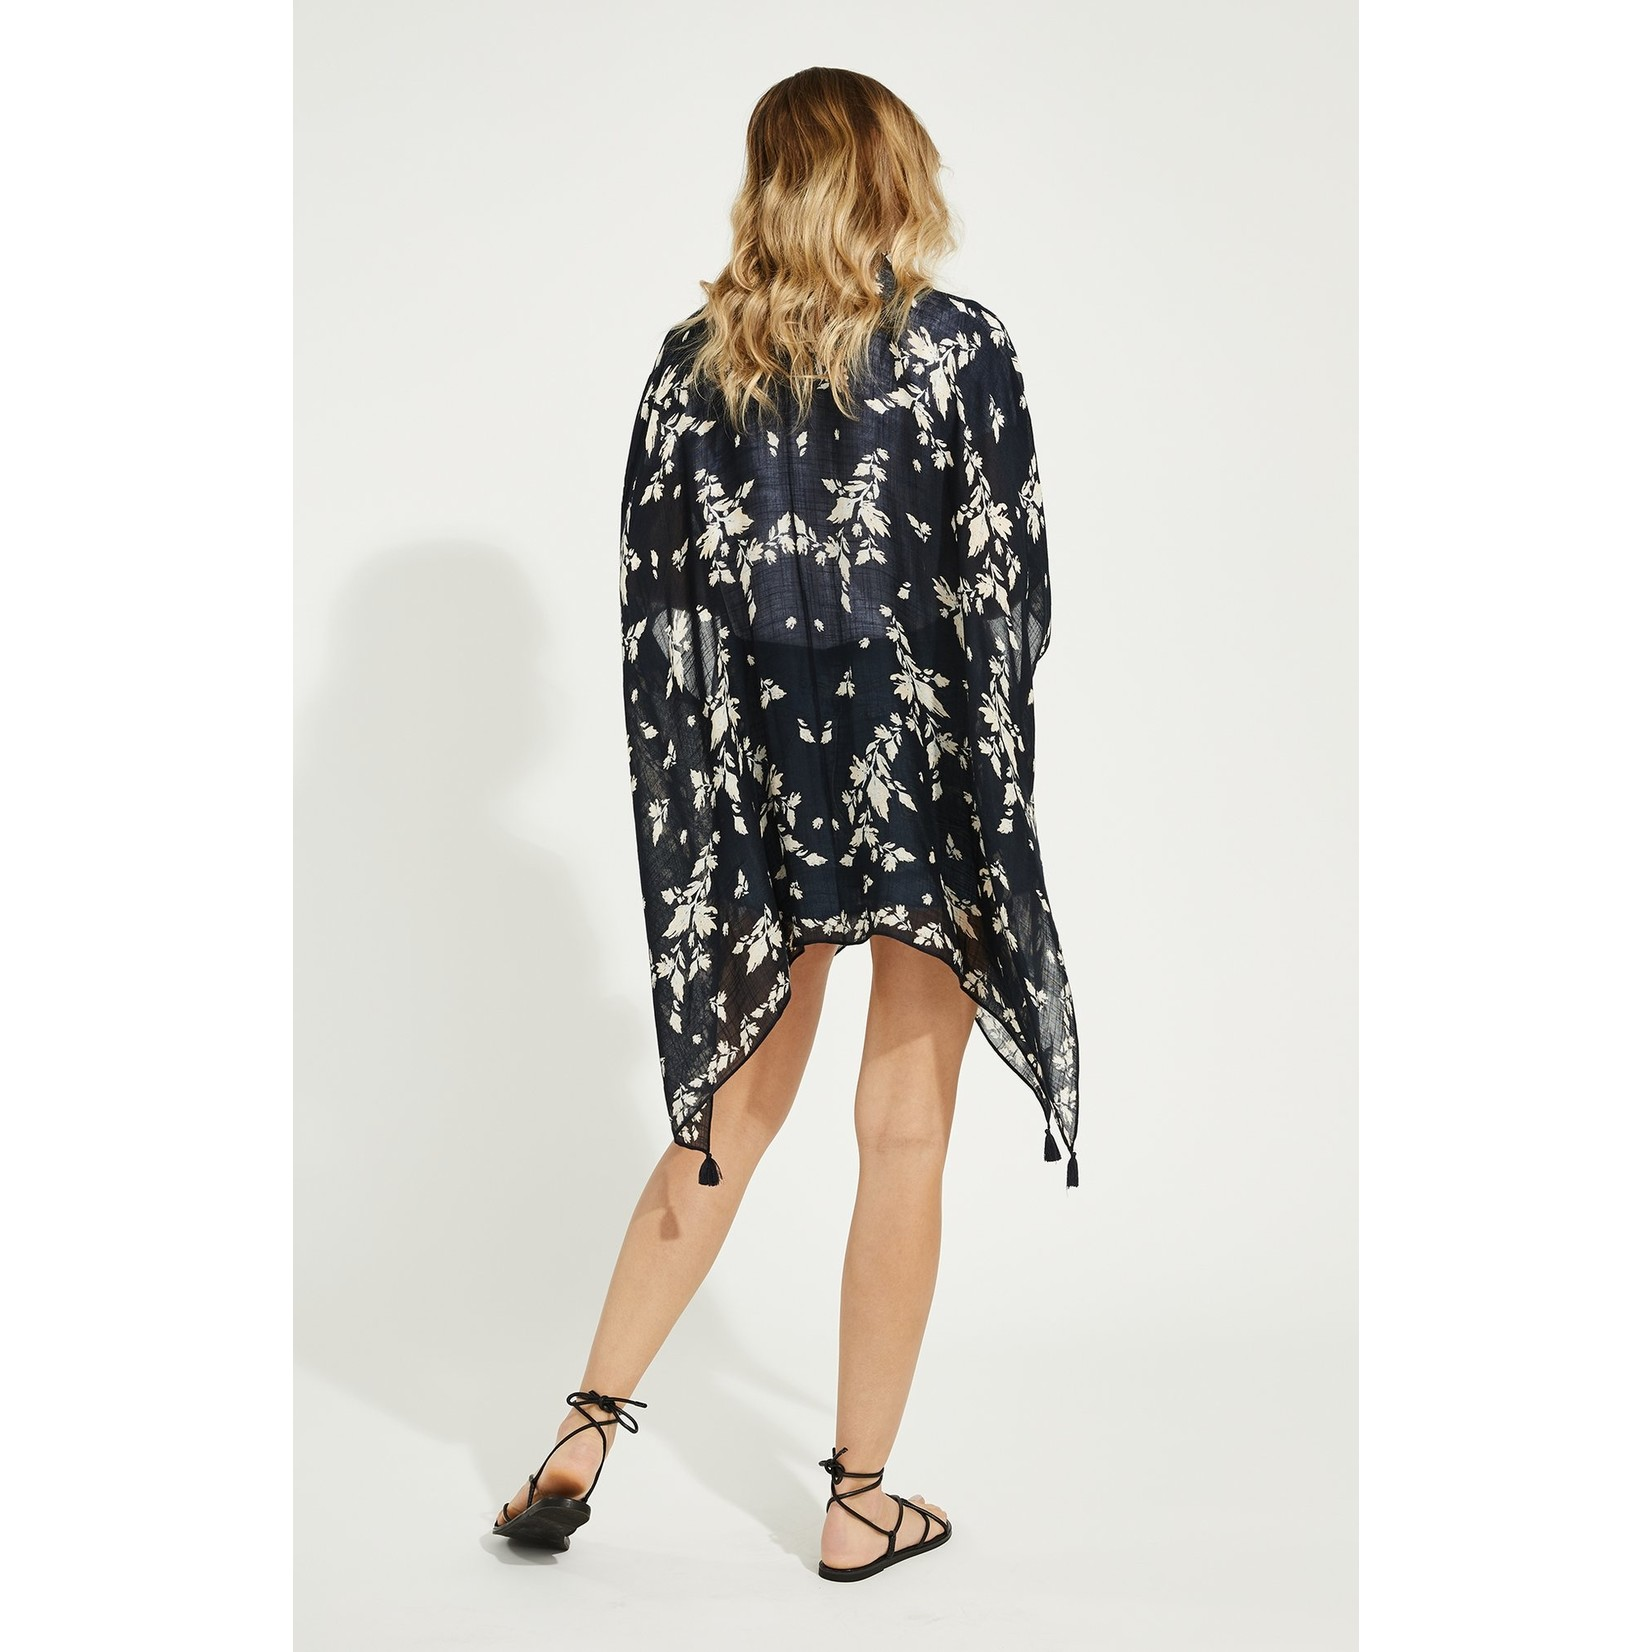 GENTLE FAWN LEDGER COVER-UP